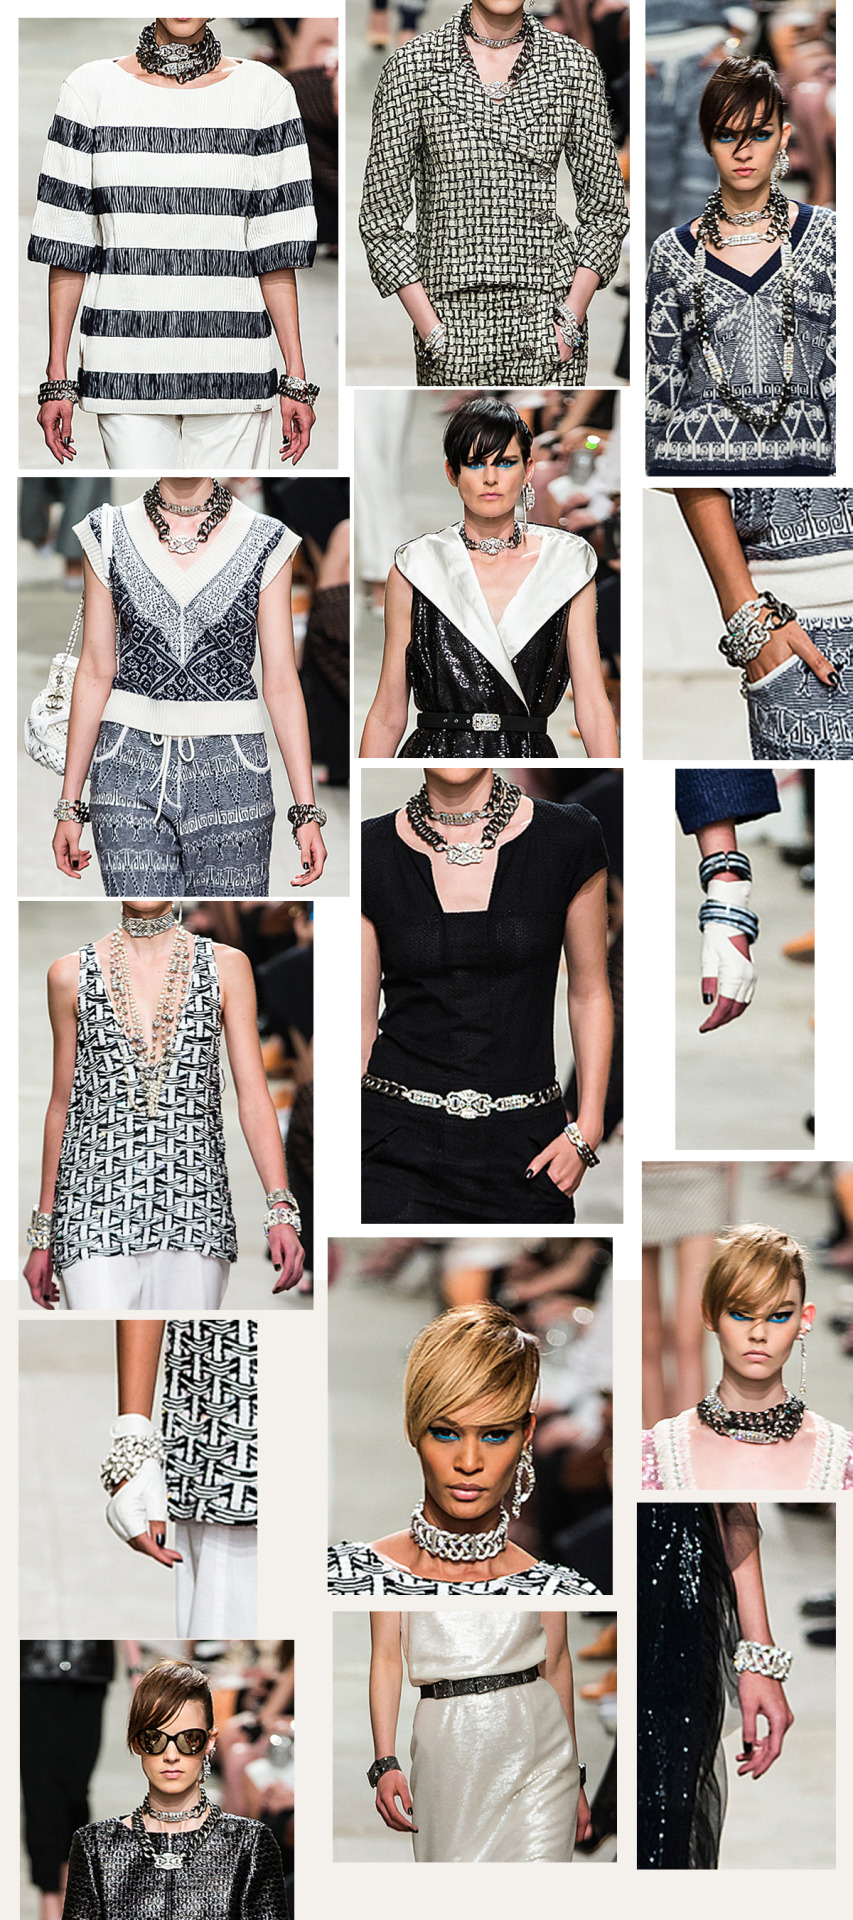 Chanel Cruise 2013 -14 in all its fine gem splendor #Chokerpalooza #LinkedInLuxury